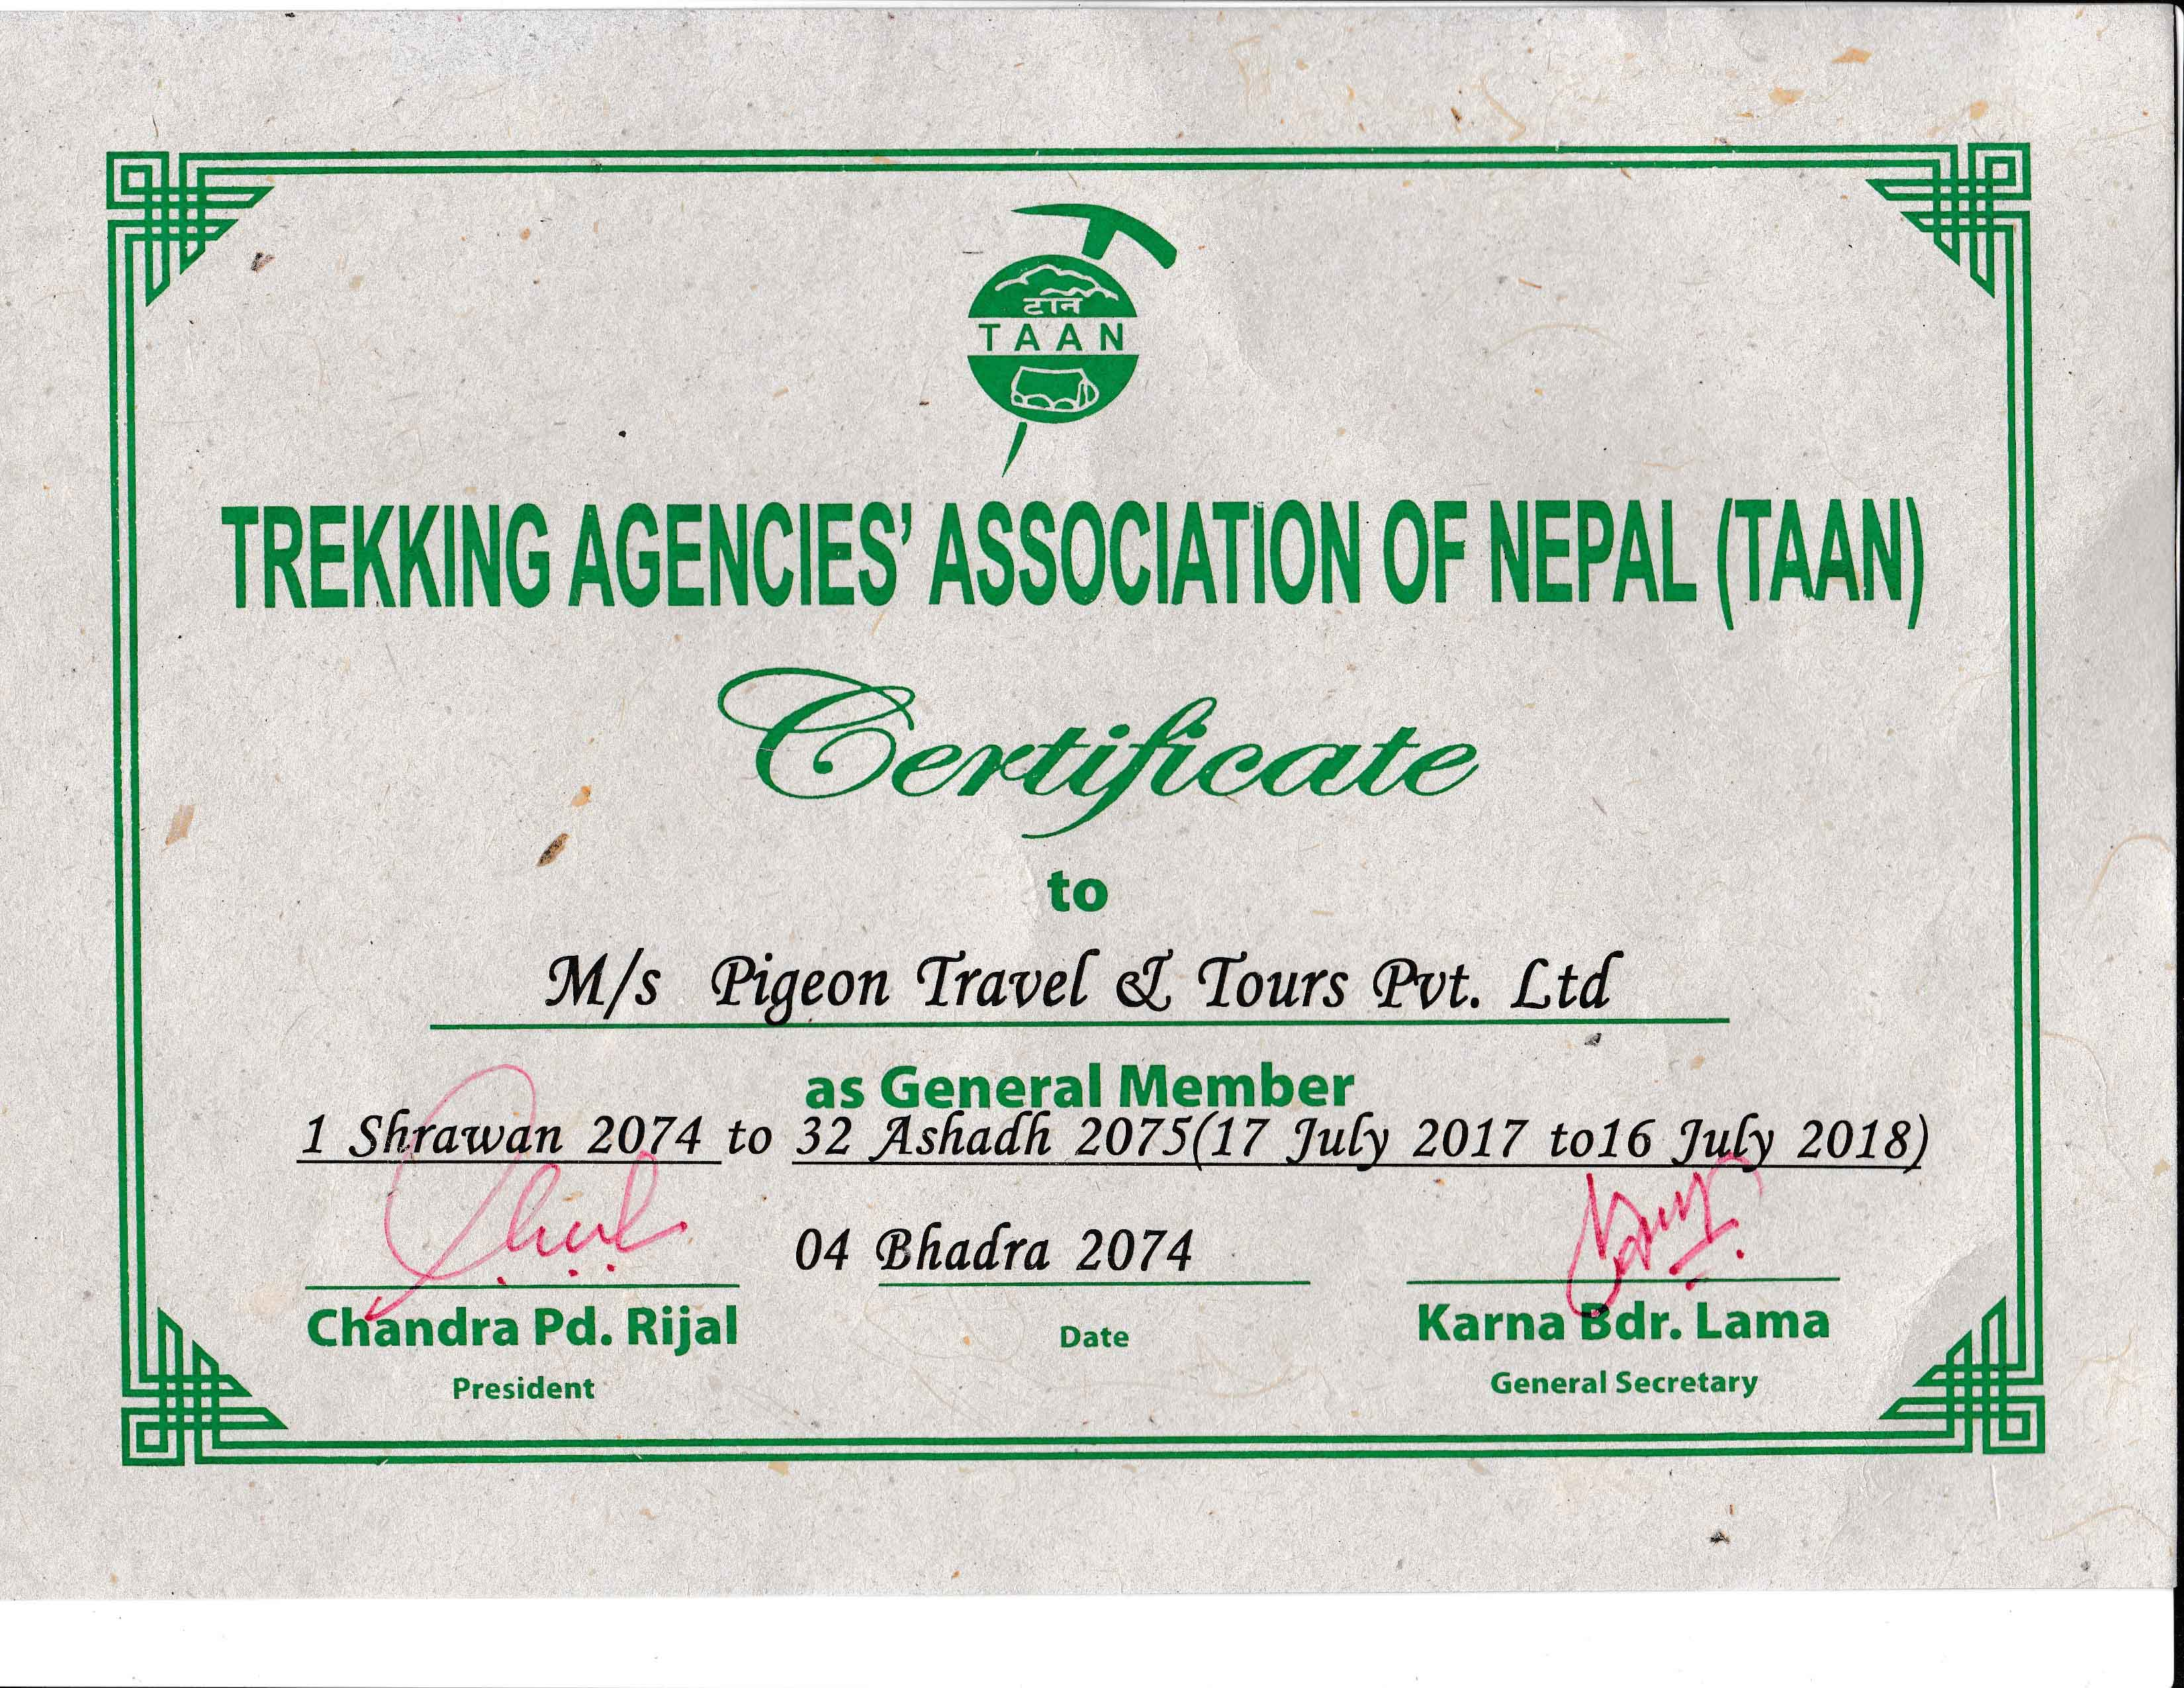 Member Certificate from Trekking Agencies Association of Nepal